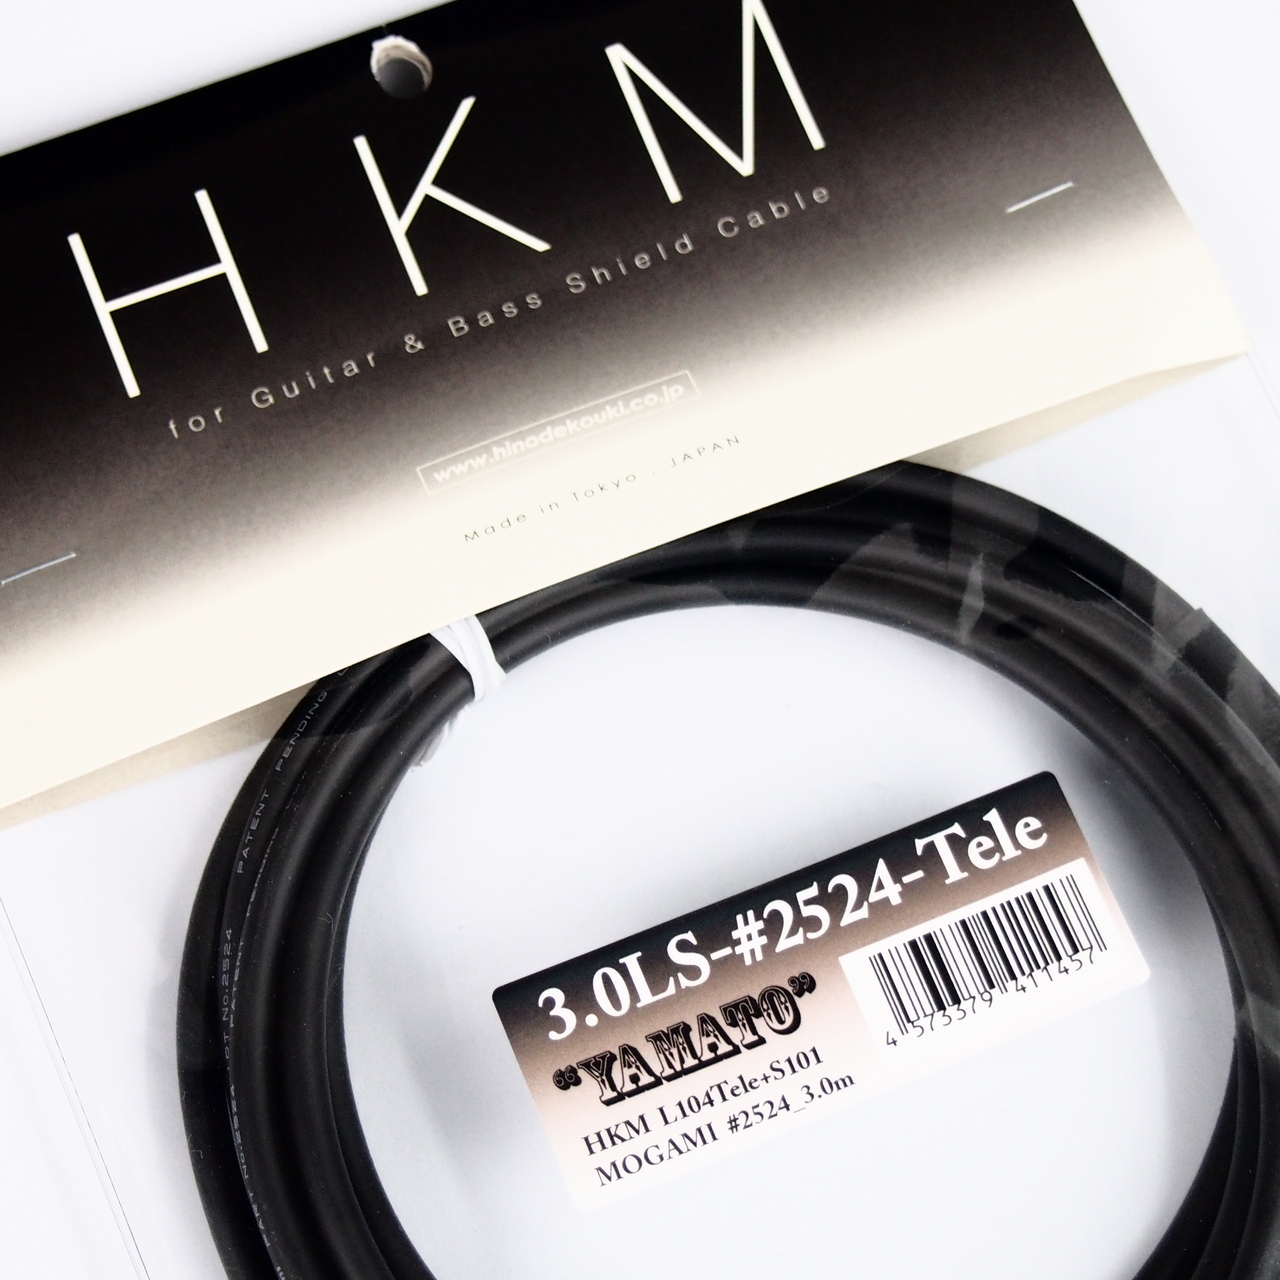 HKM cables YAMATO 3LS-TL